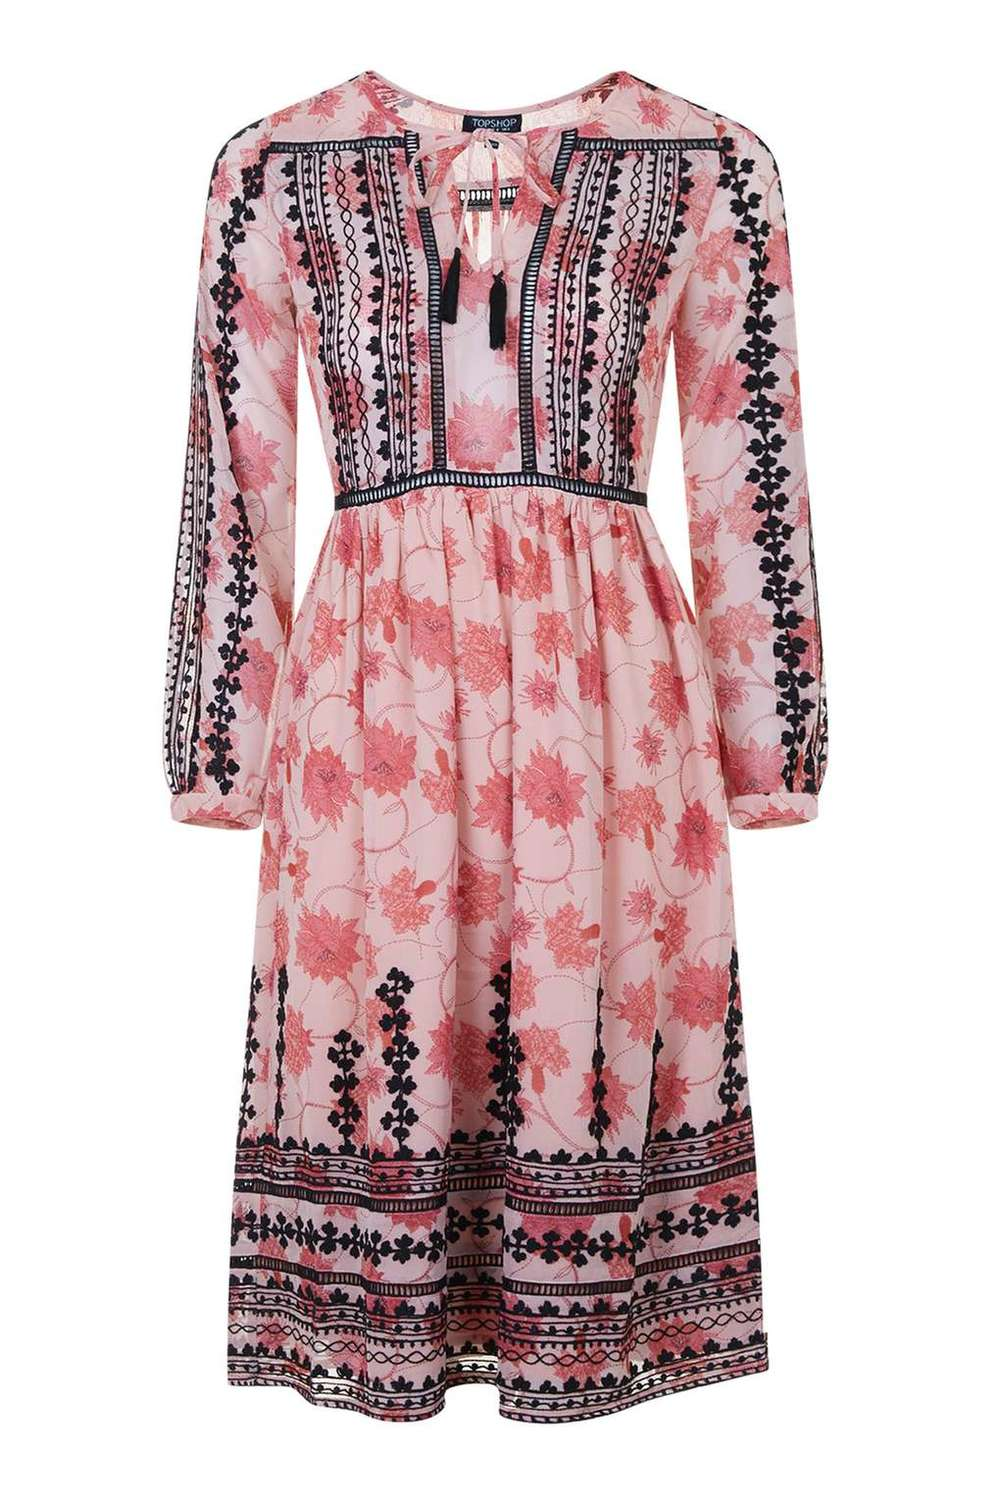 Topshop, Embroidered Smock Dress, $81